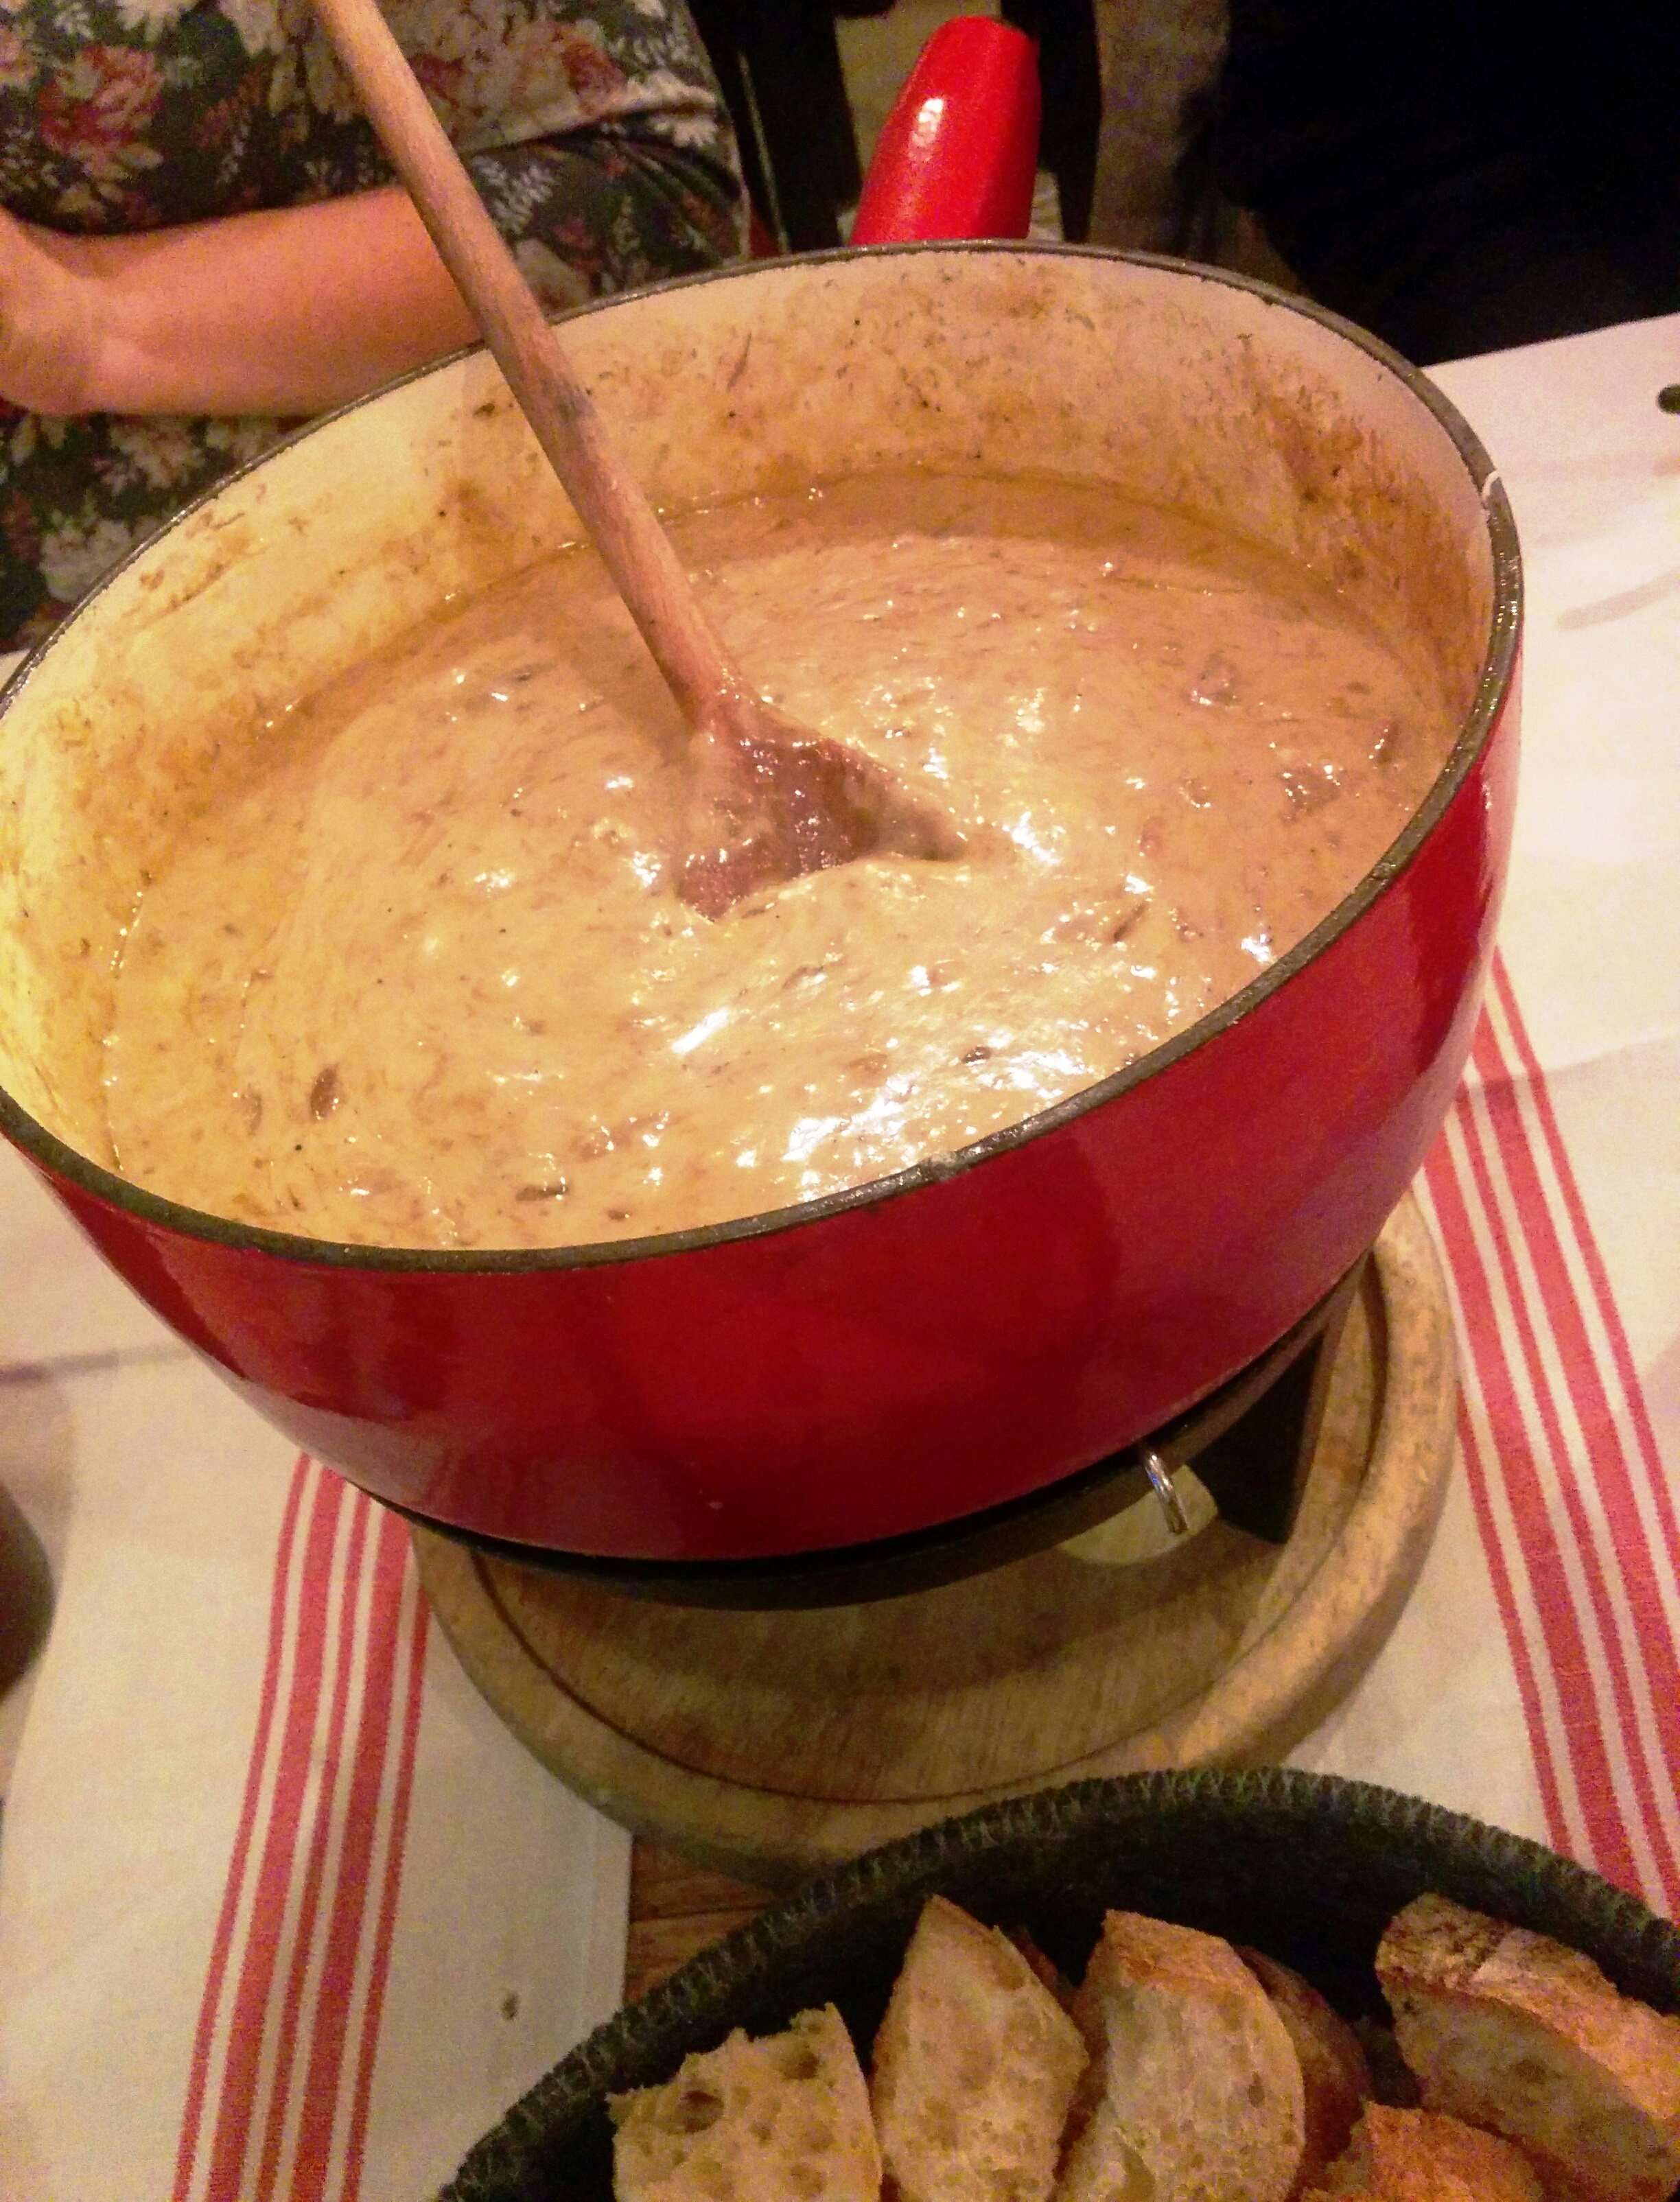 Cheesey, gooey, delicious fondue at our favorite fondue restaurant in Pornichet, the next seaside town over.